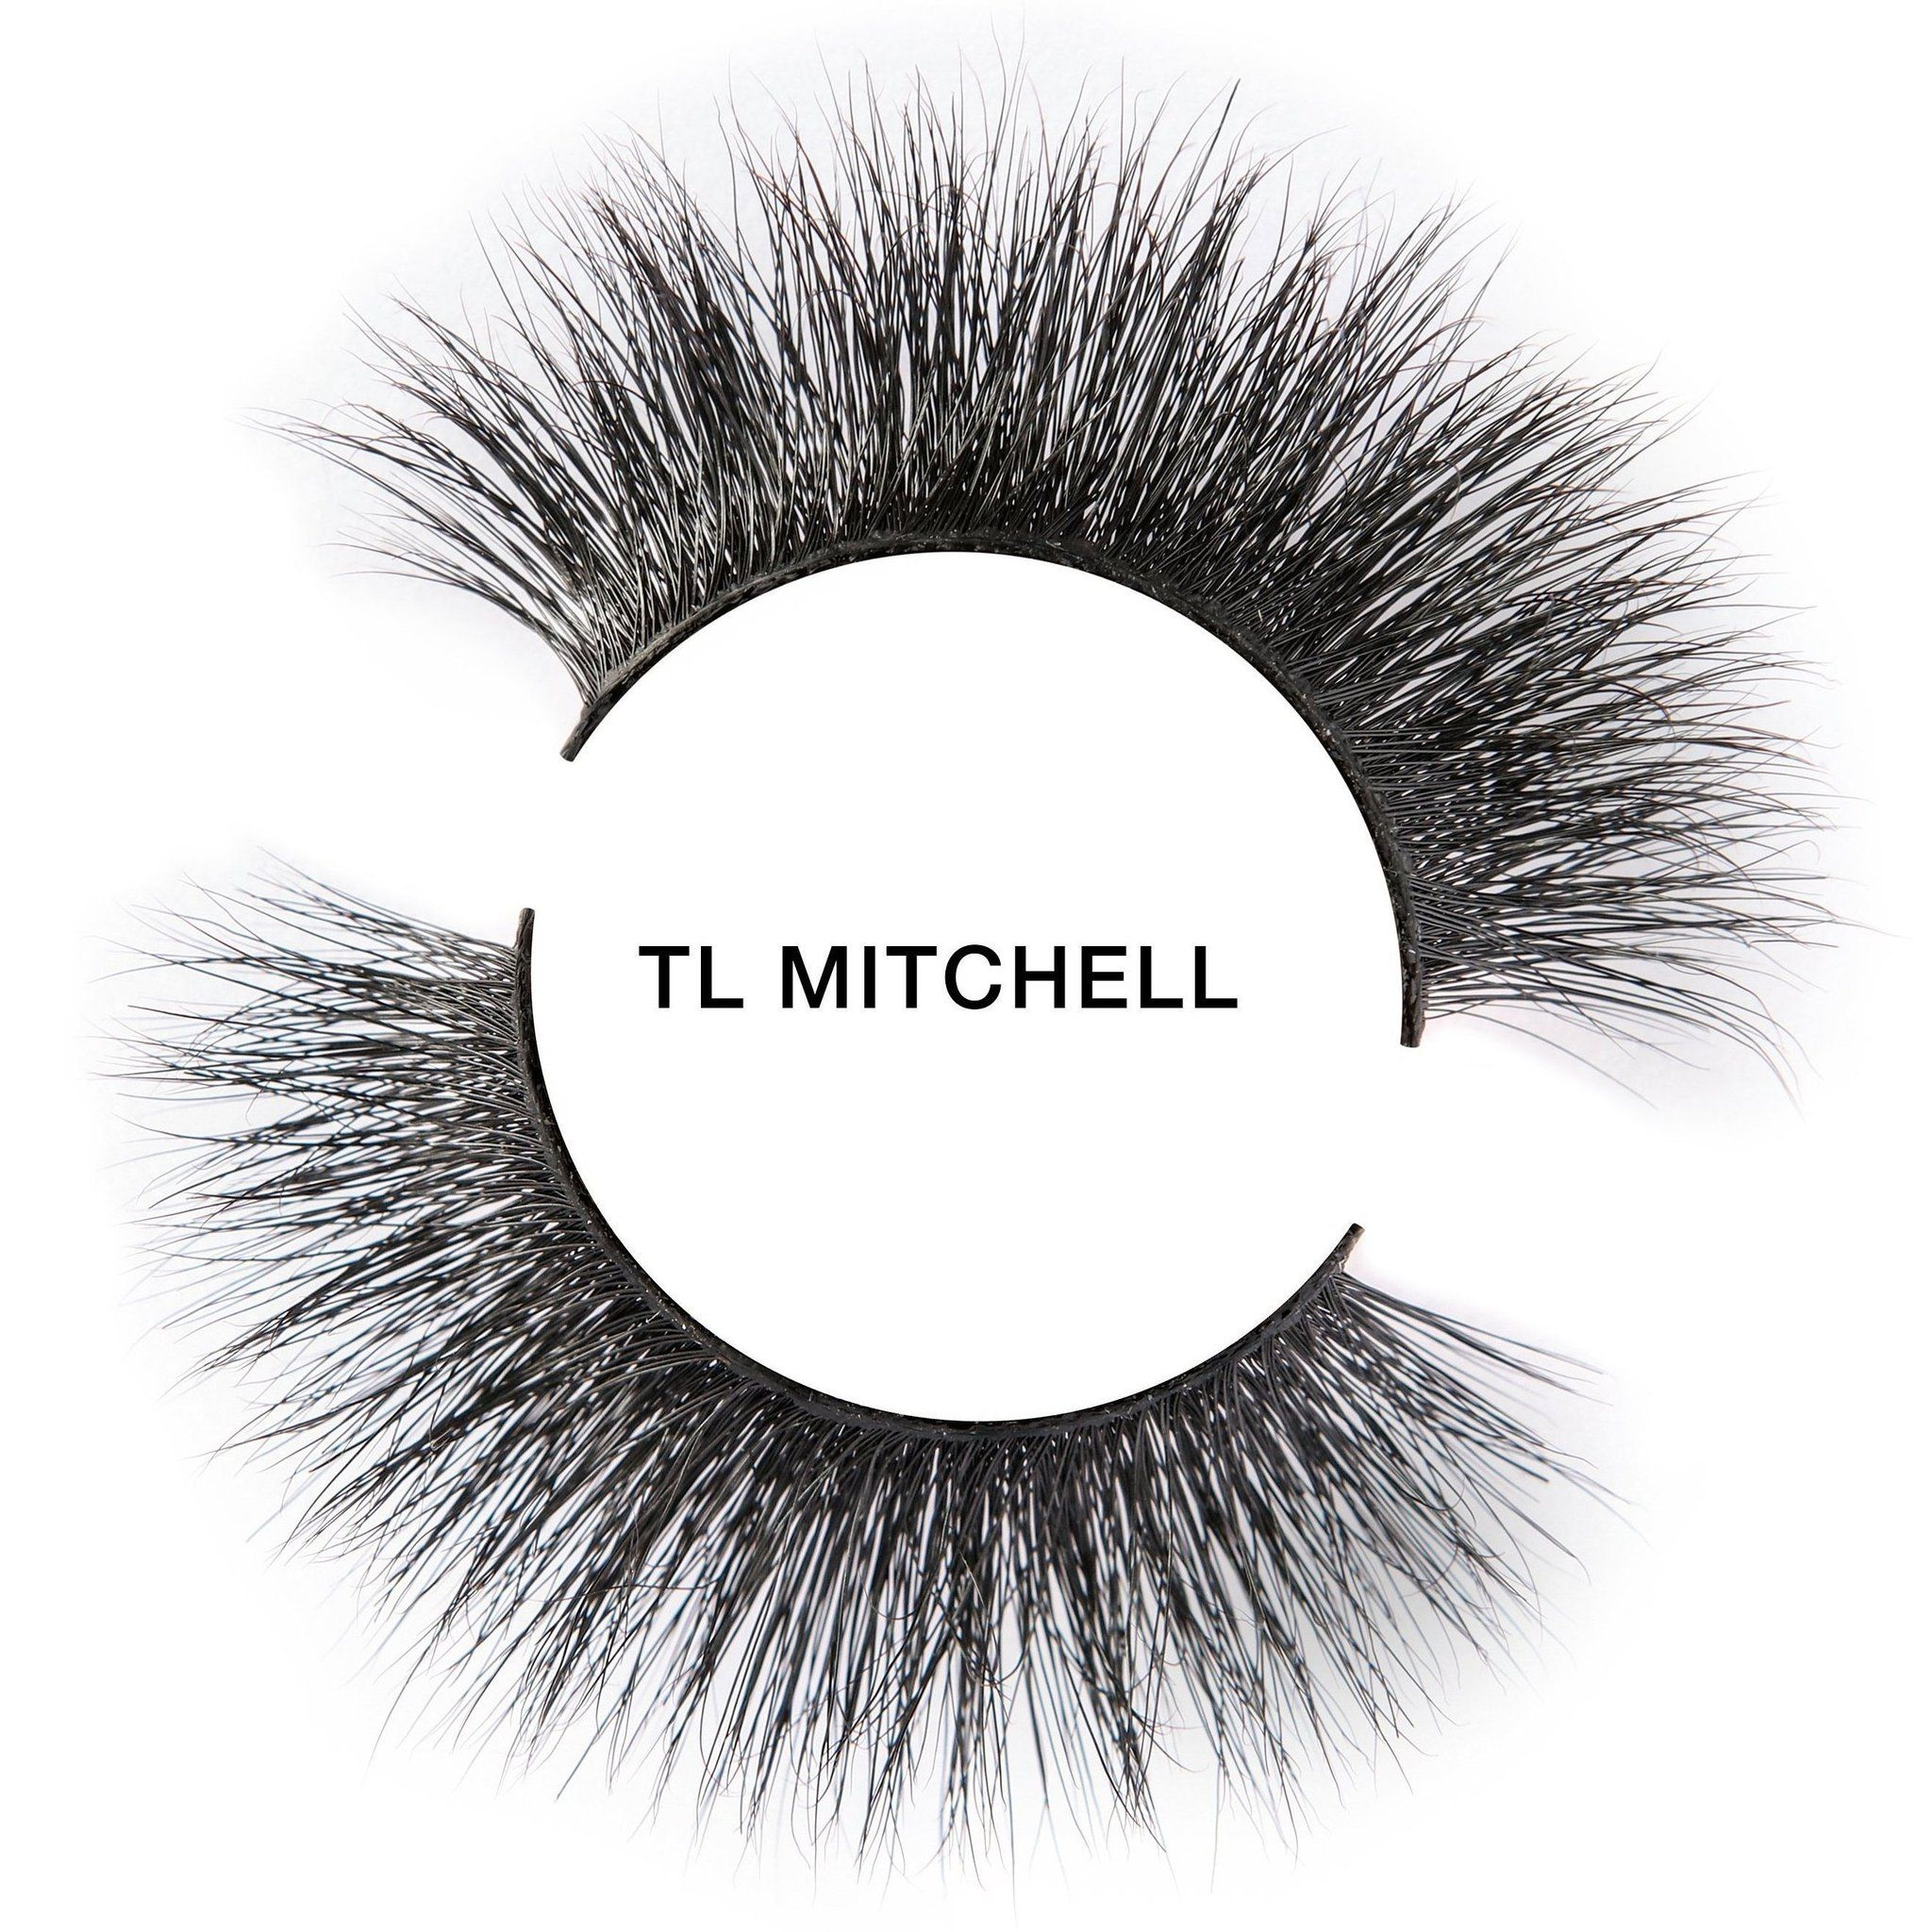 4D TLMitchell in 2020 Lashes, Makeup shack, Eyelashes